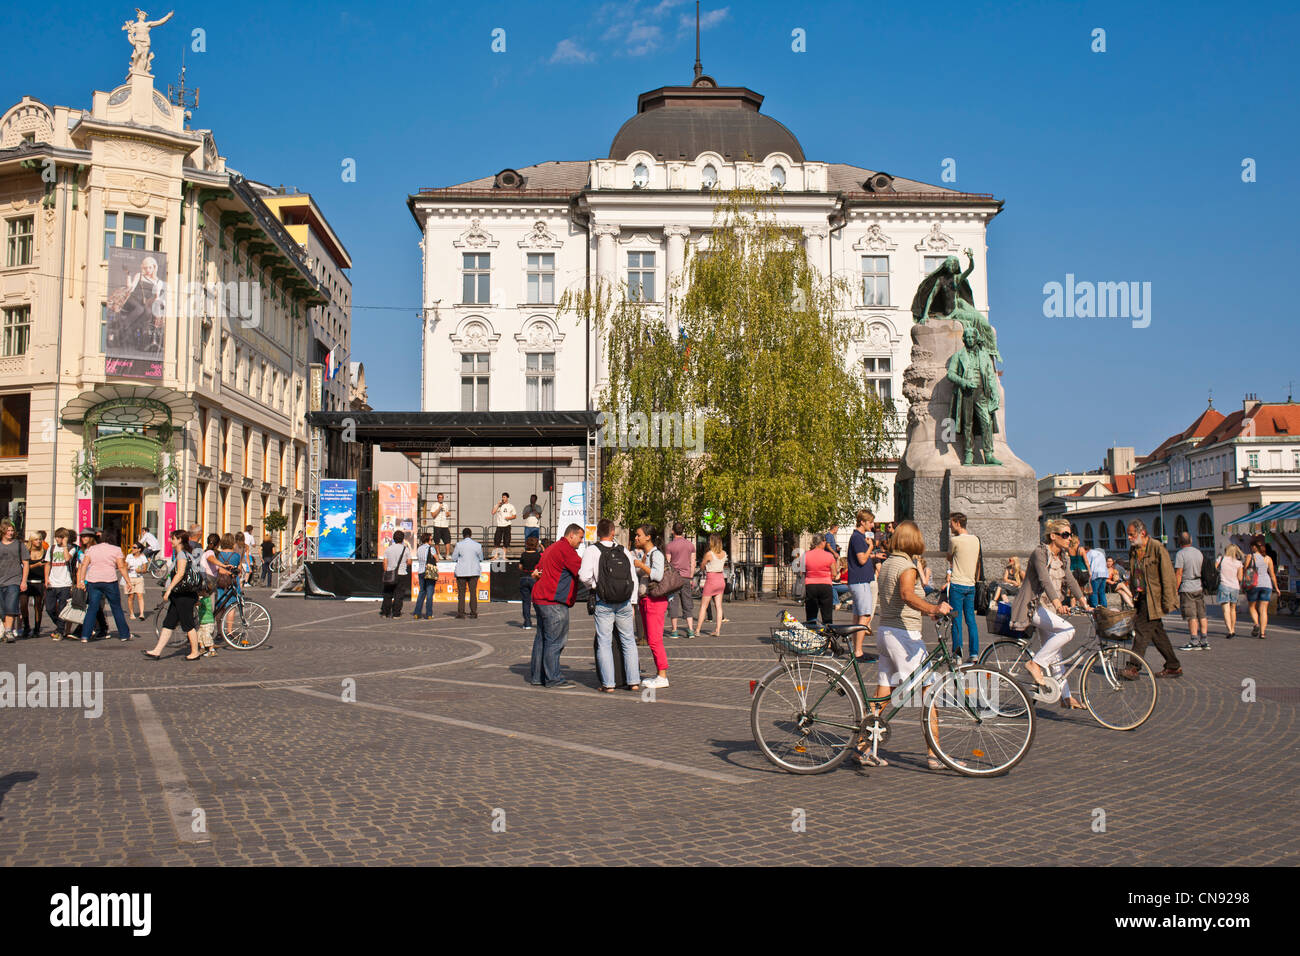 Slovenia, Ljubljana, capital town of Slovenia, the Preseren Square - Stock Image